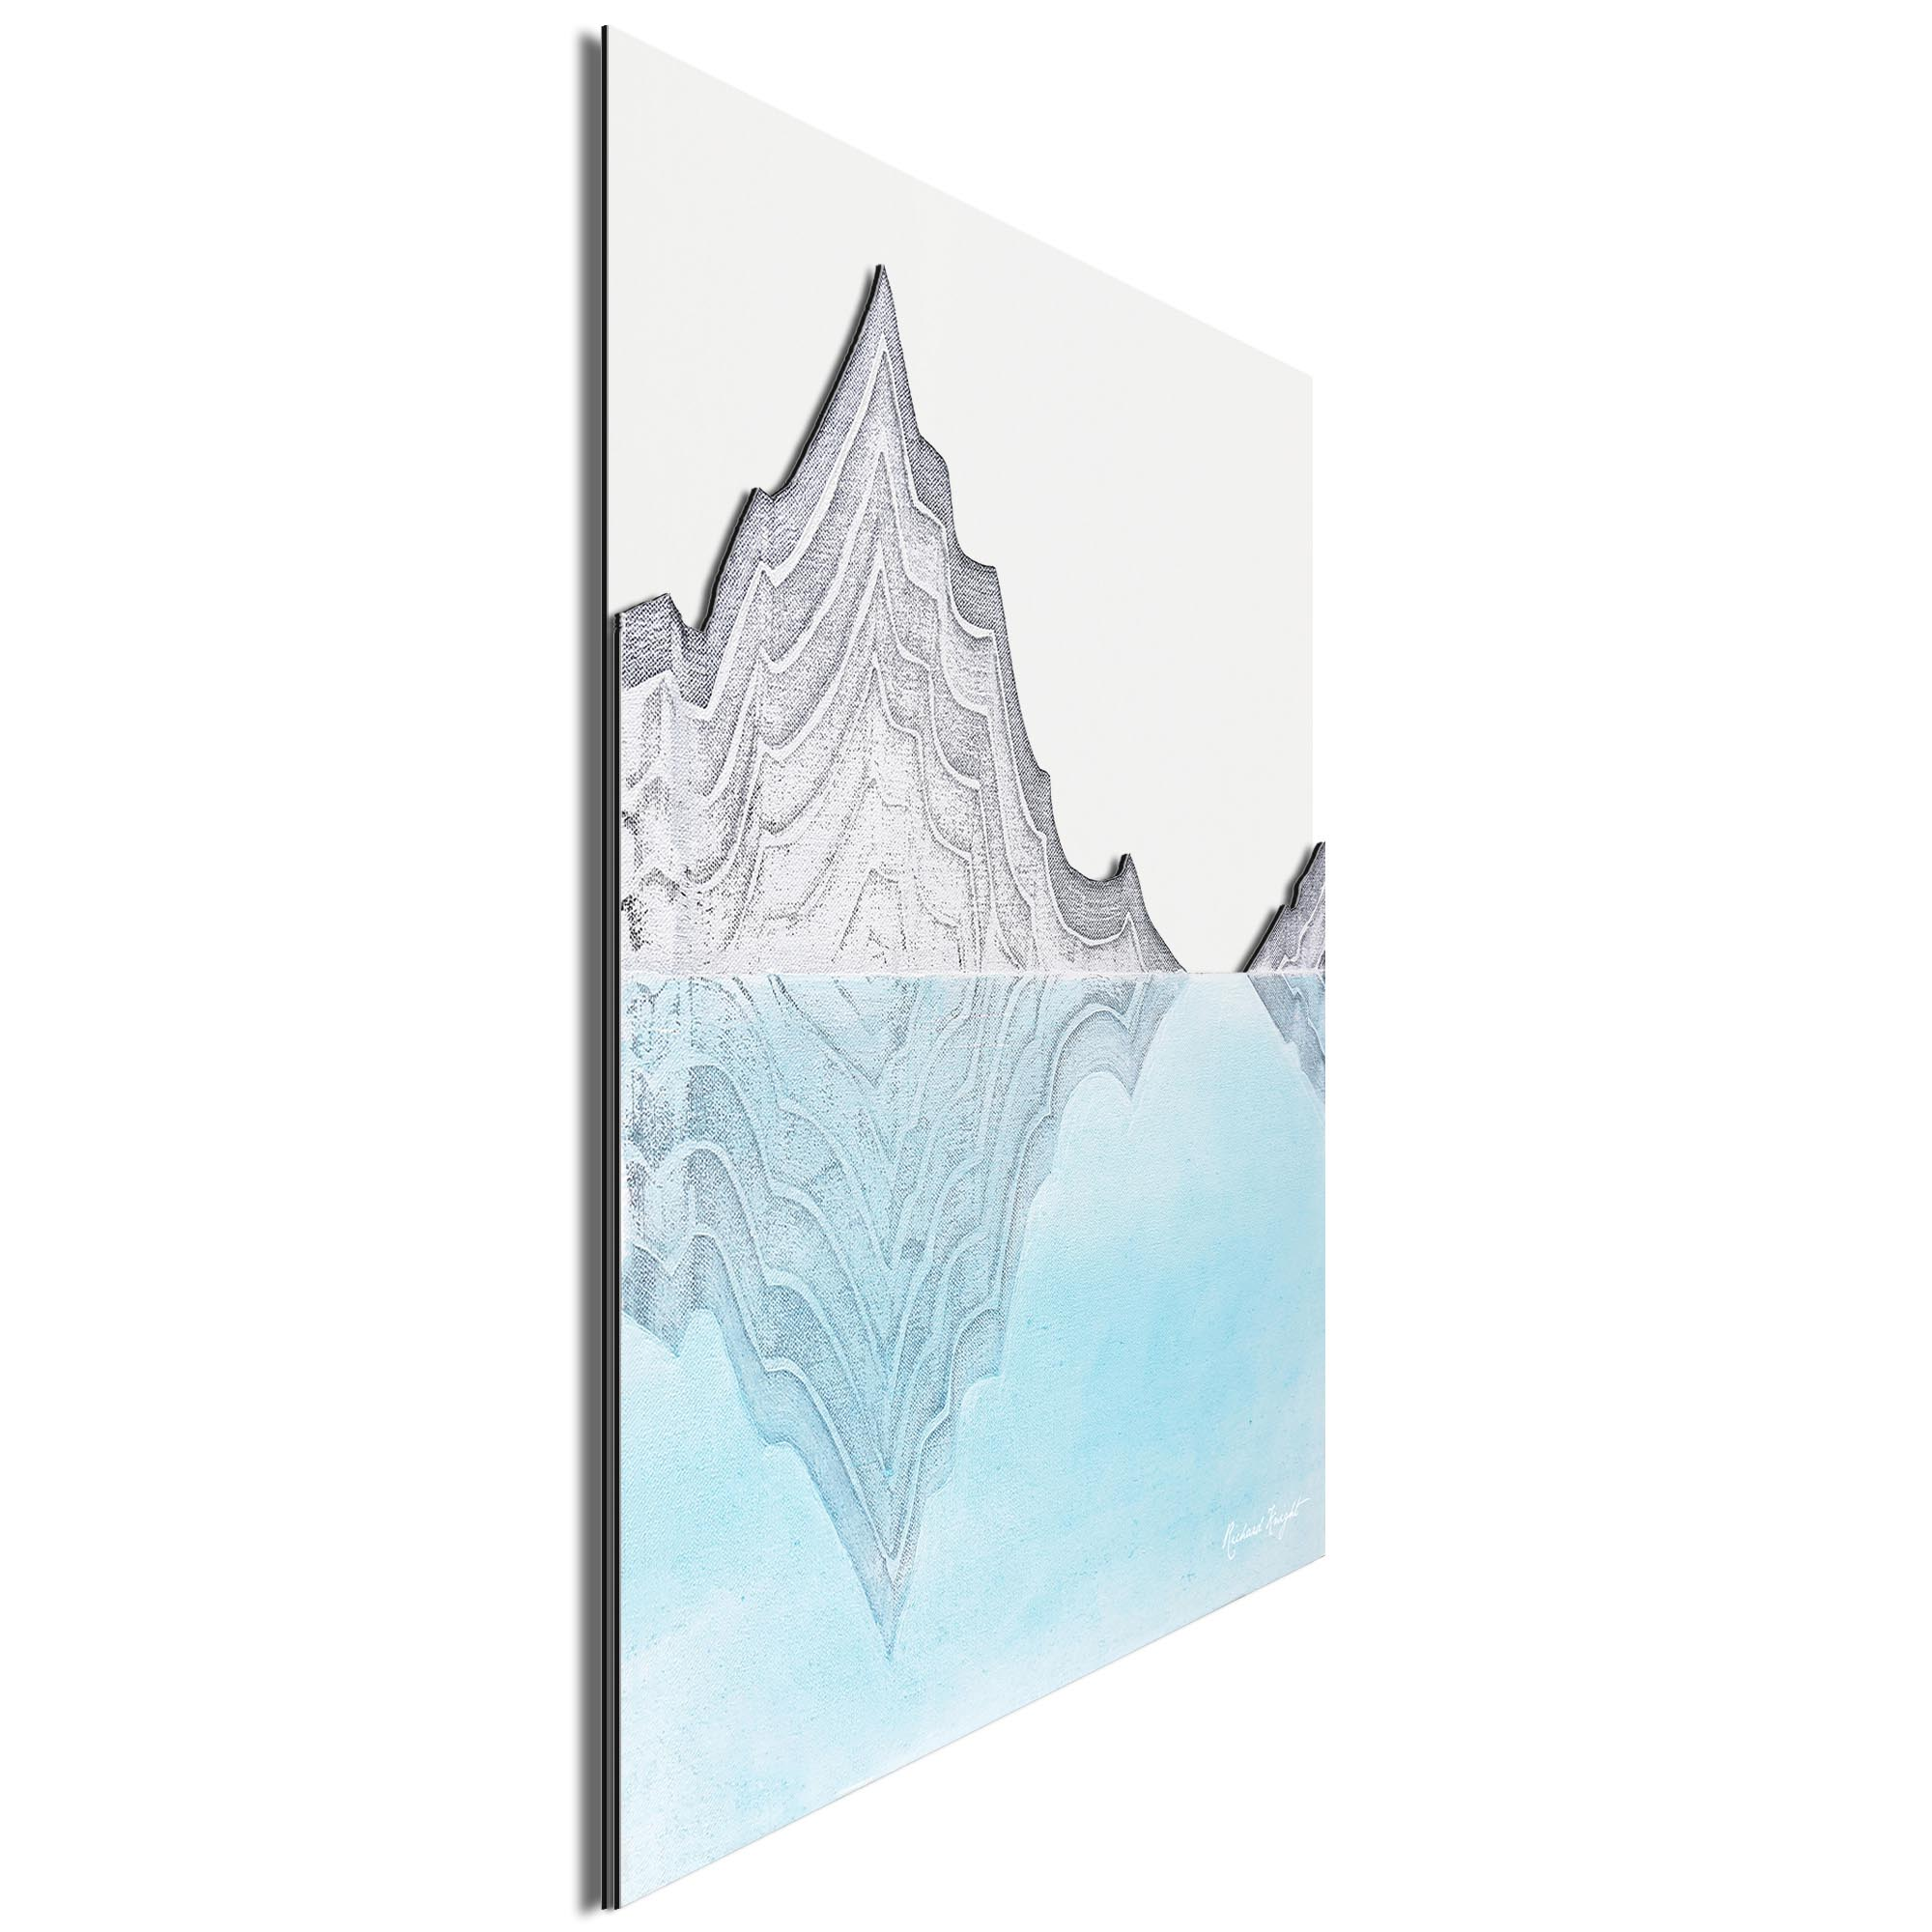 Glacial Mountains by Richard Knight - Ltd. Ed. Minimalist Abstract Landscape Art - Image 2